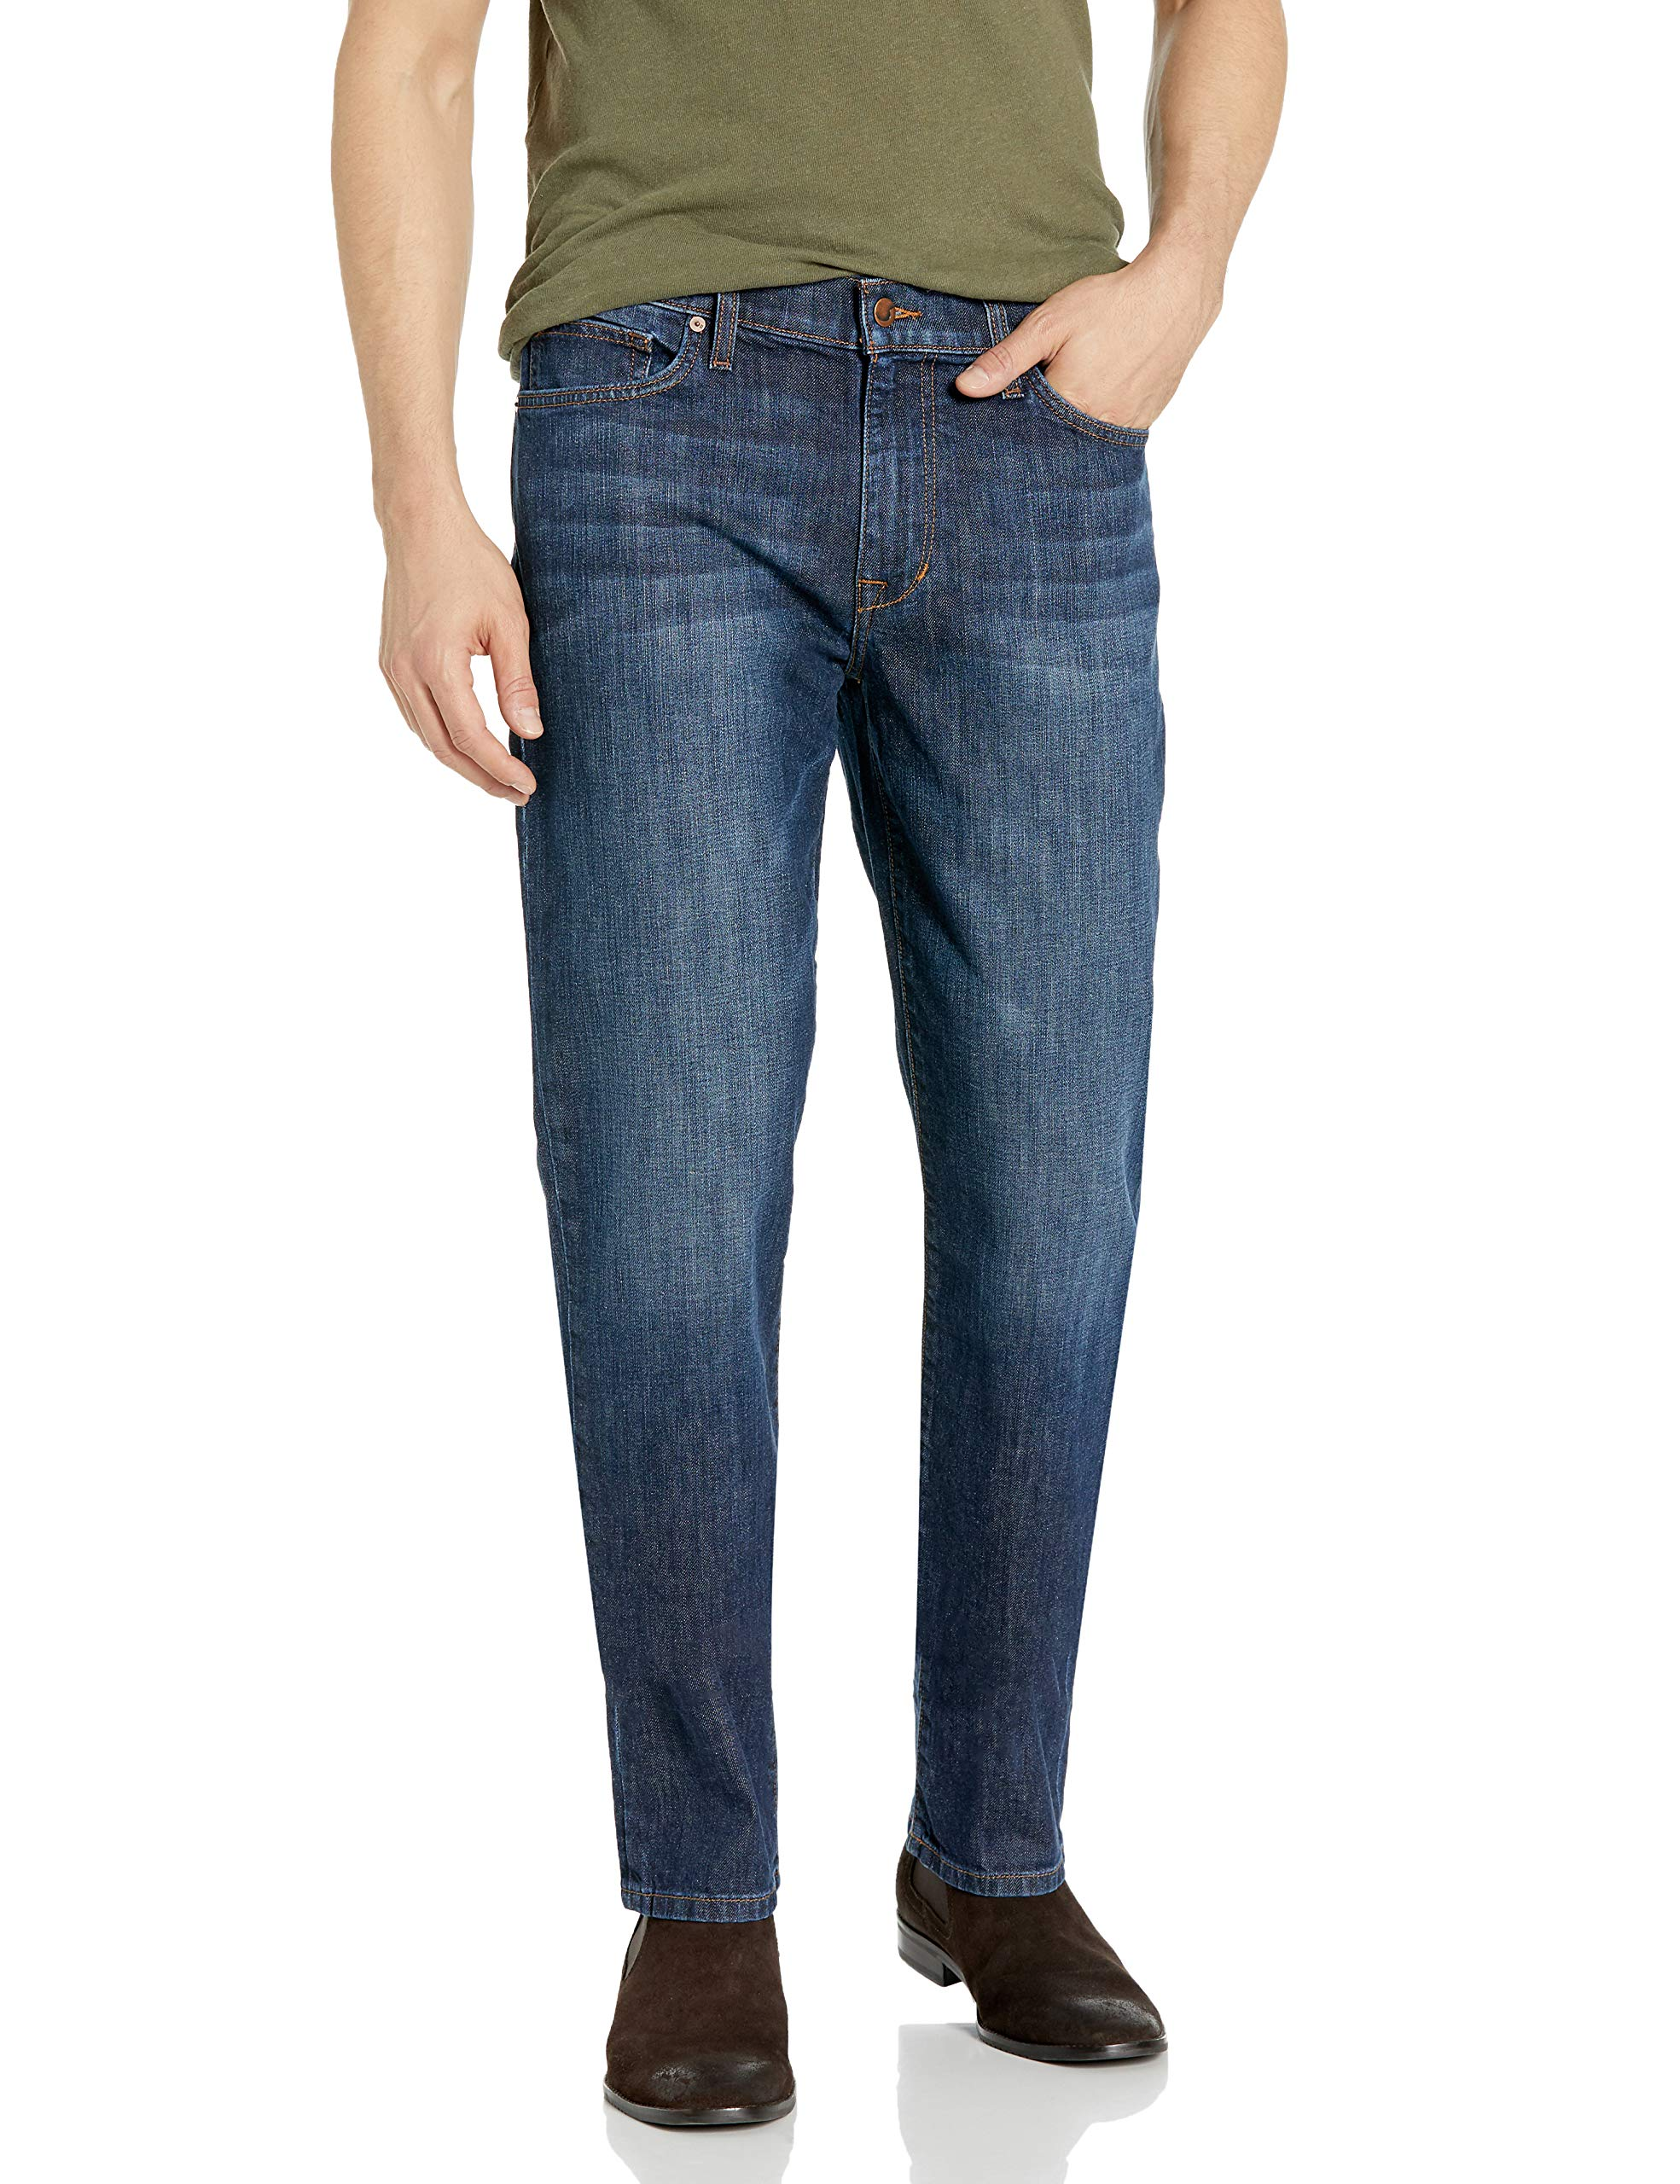 Joe's Jeans Men's Classic Fit Straight Leg Jeans